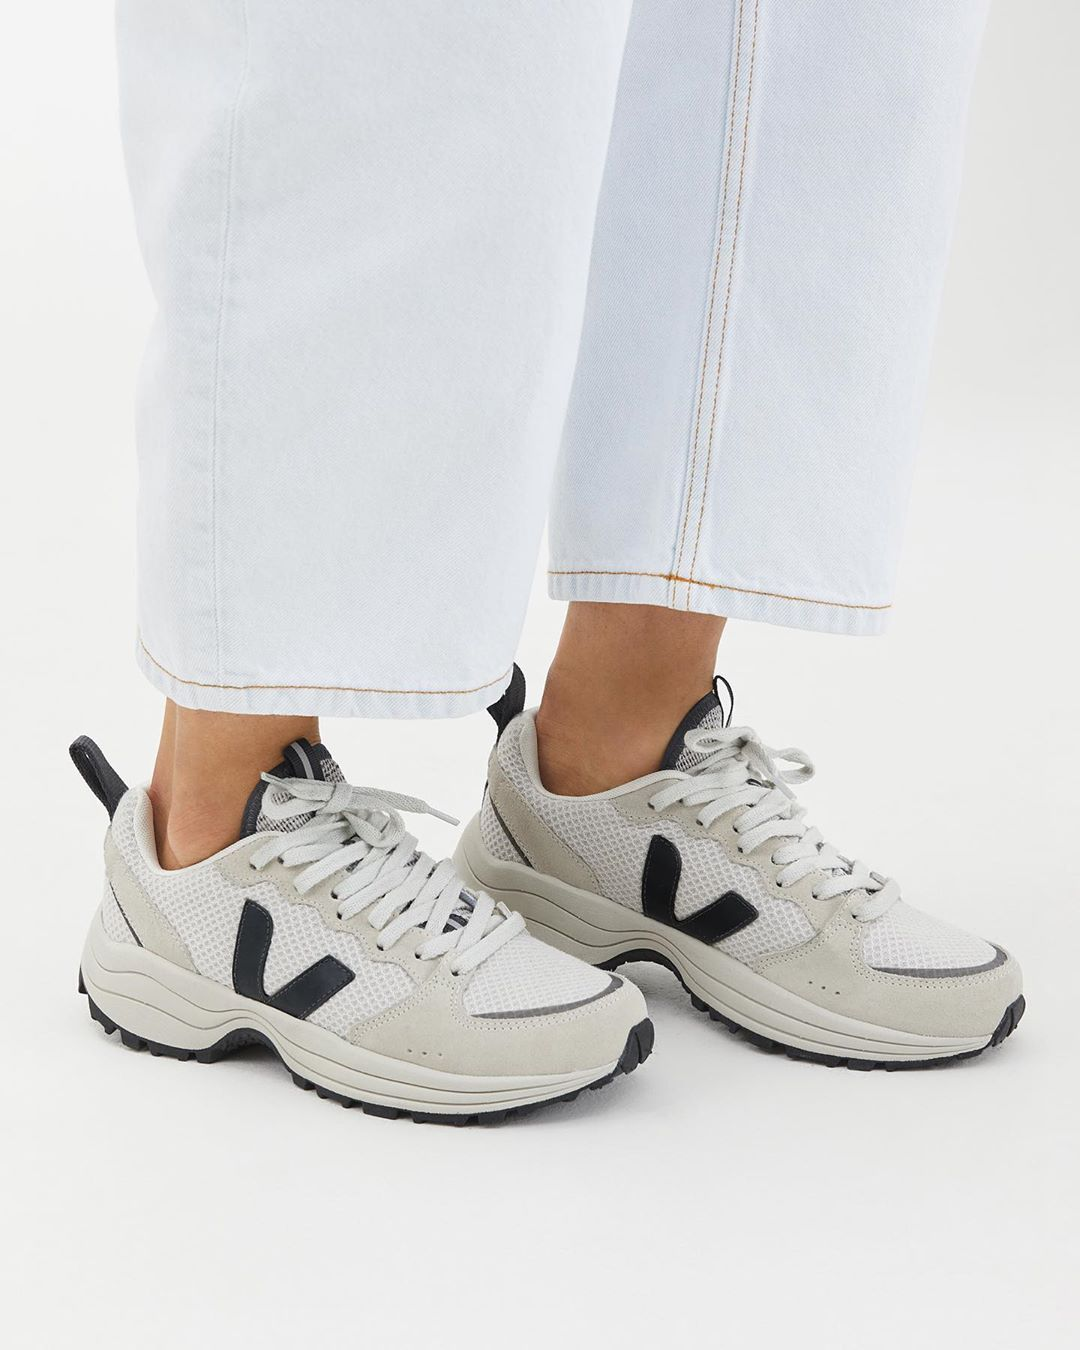 These trainers from Paris-based @veja